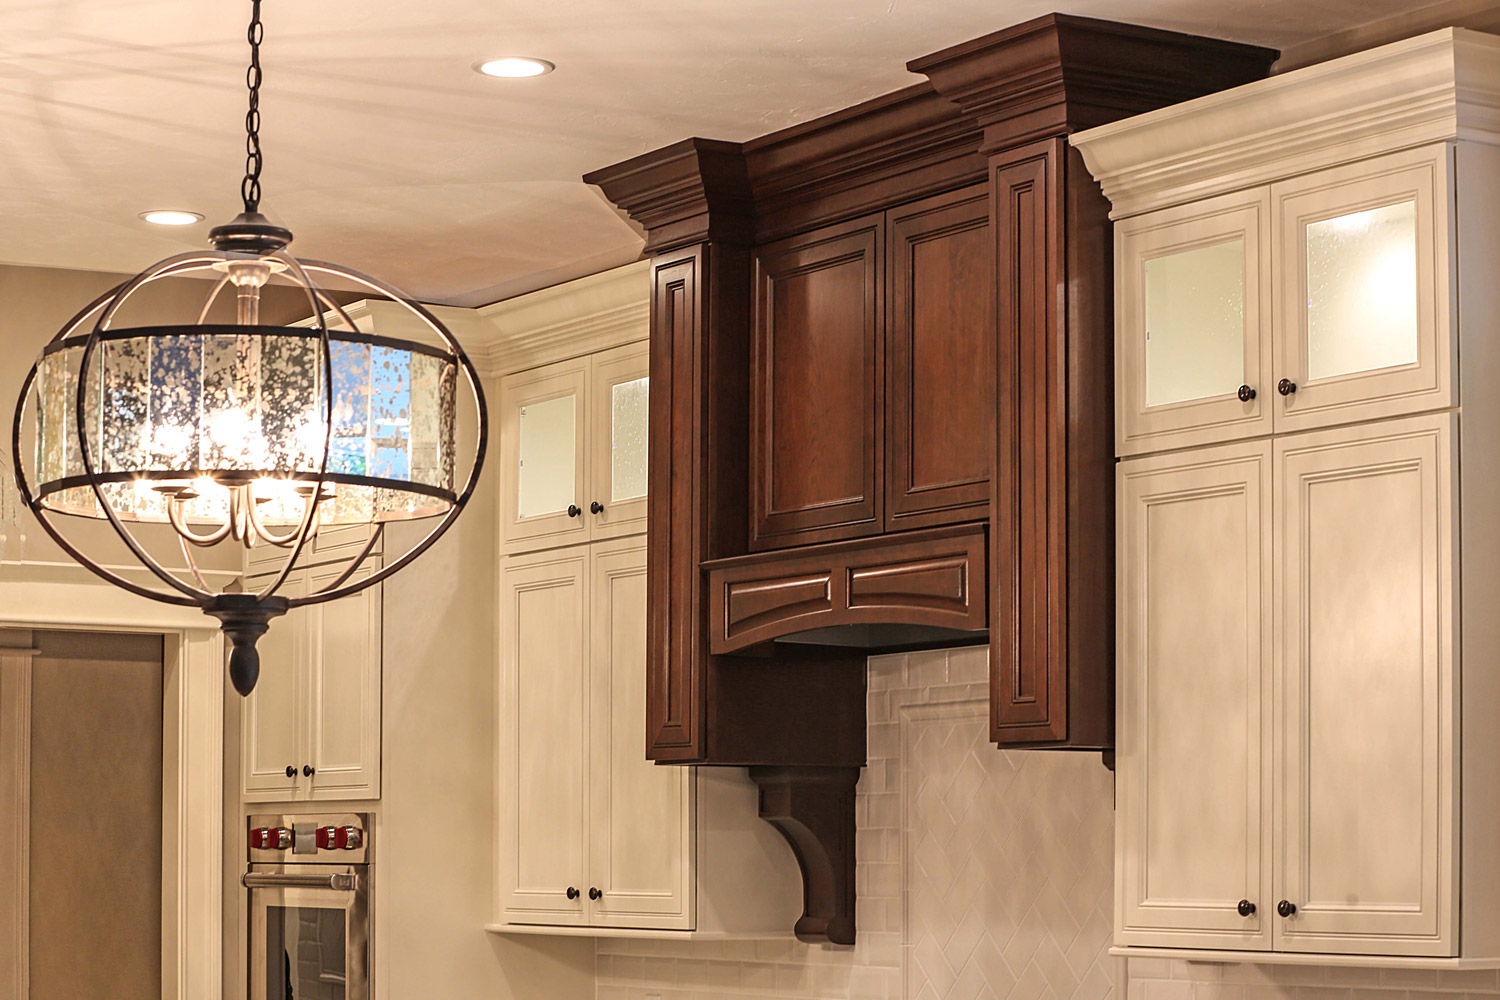 Off-white cabinets contrast range hood with corbels in Espresso finish.